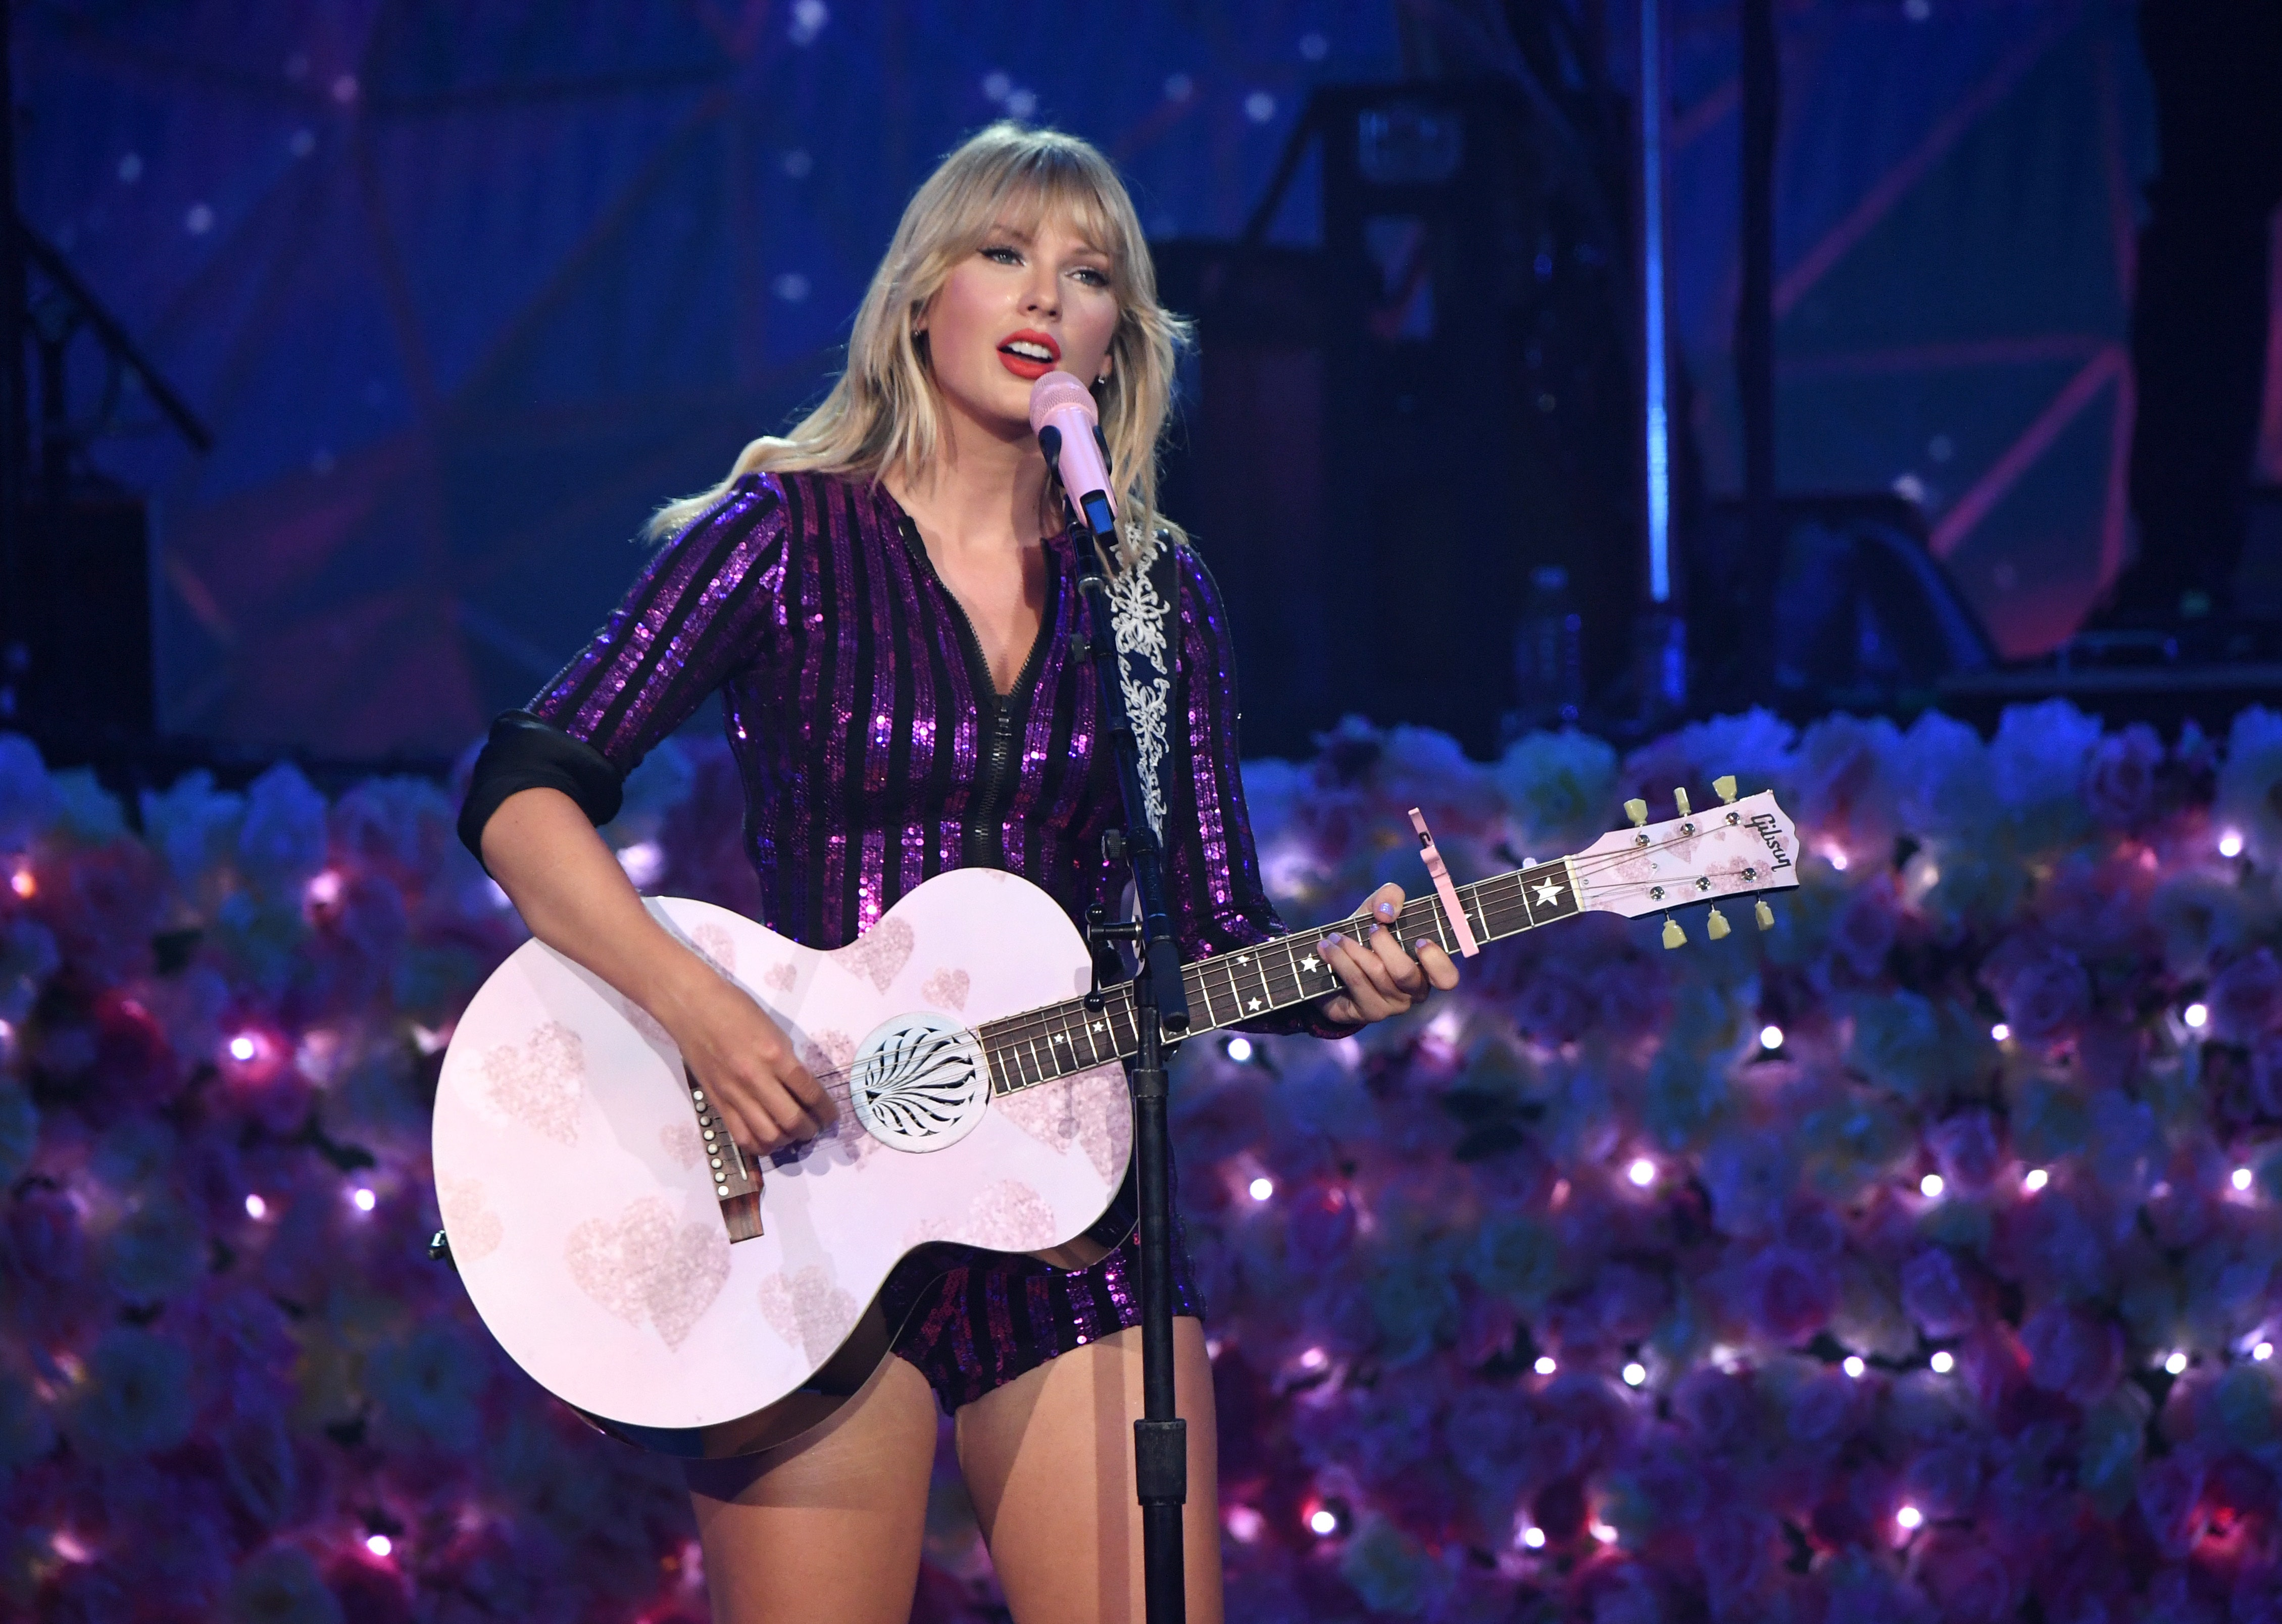 Taylor swift songs most popular